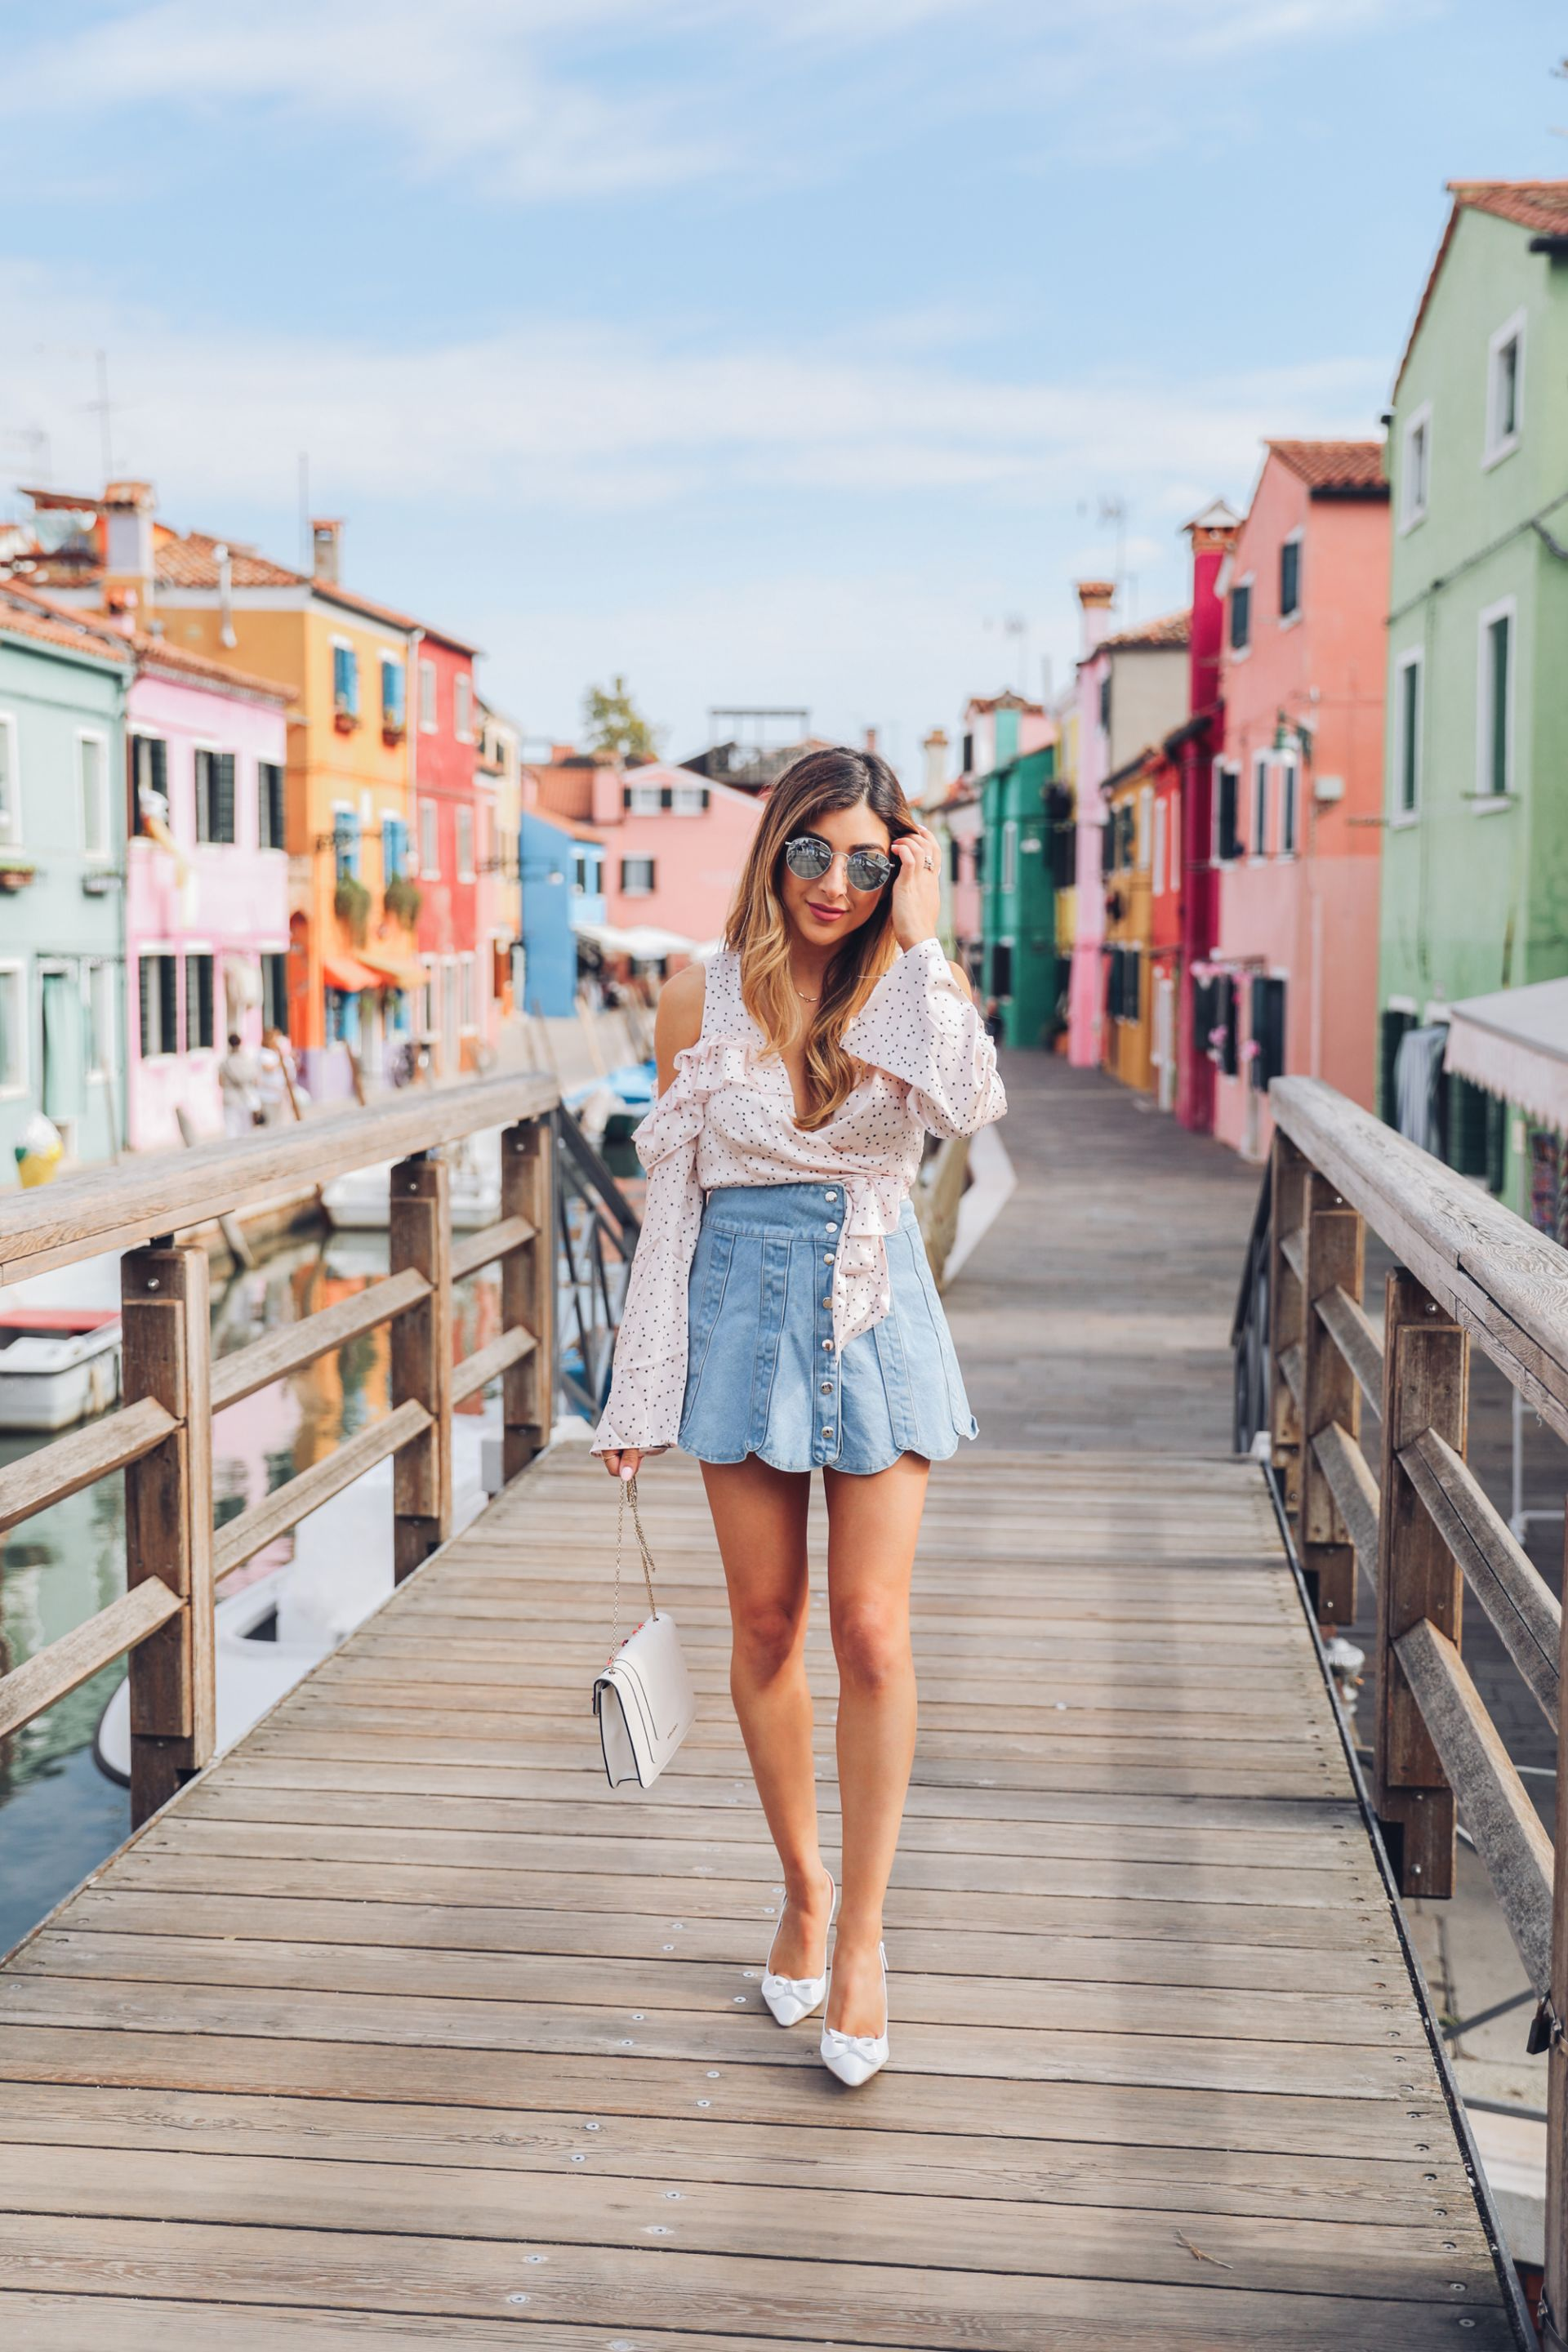 Amelia-Burano-second-7